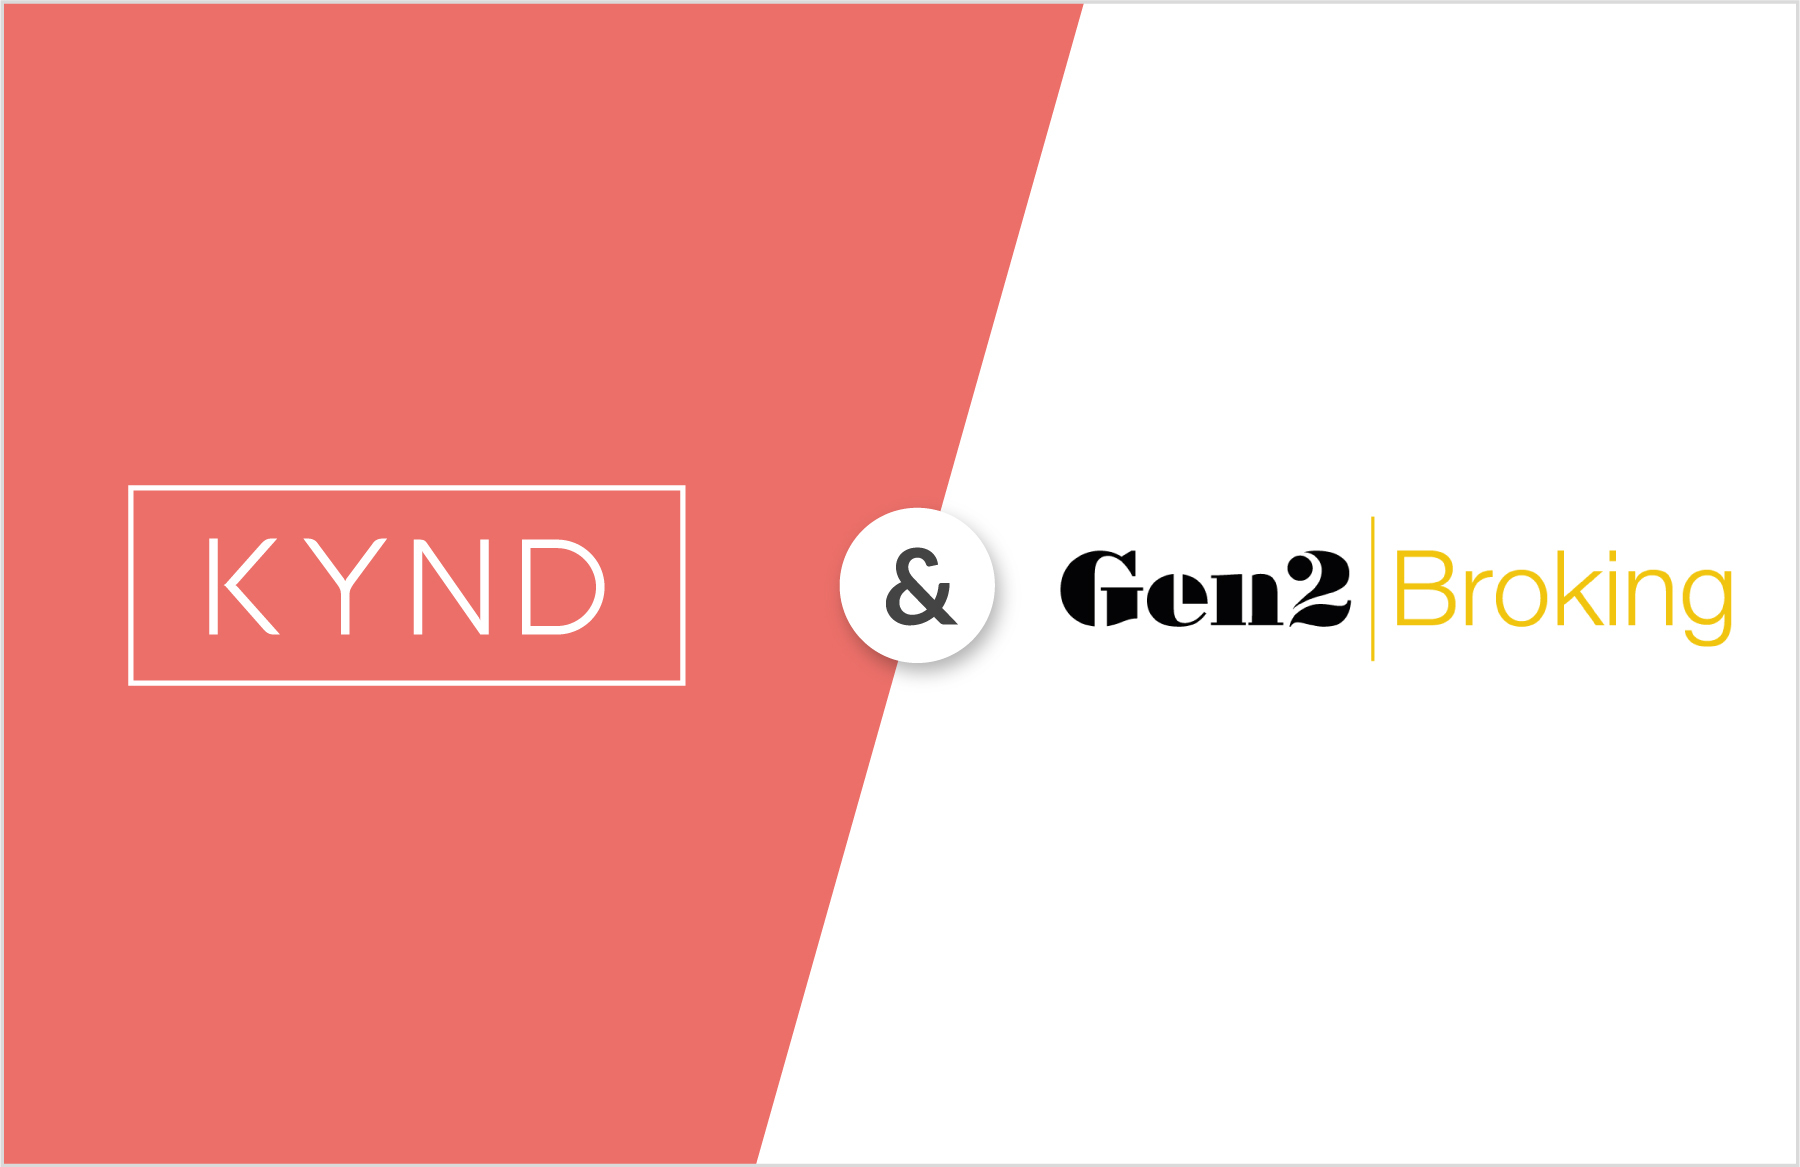 Gen2 Broking to join KYND's Broker Programme to help businesses take control of cyber risk